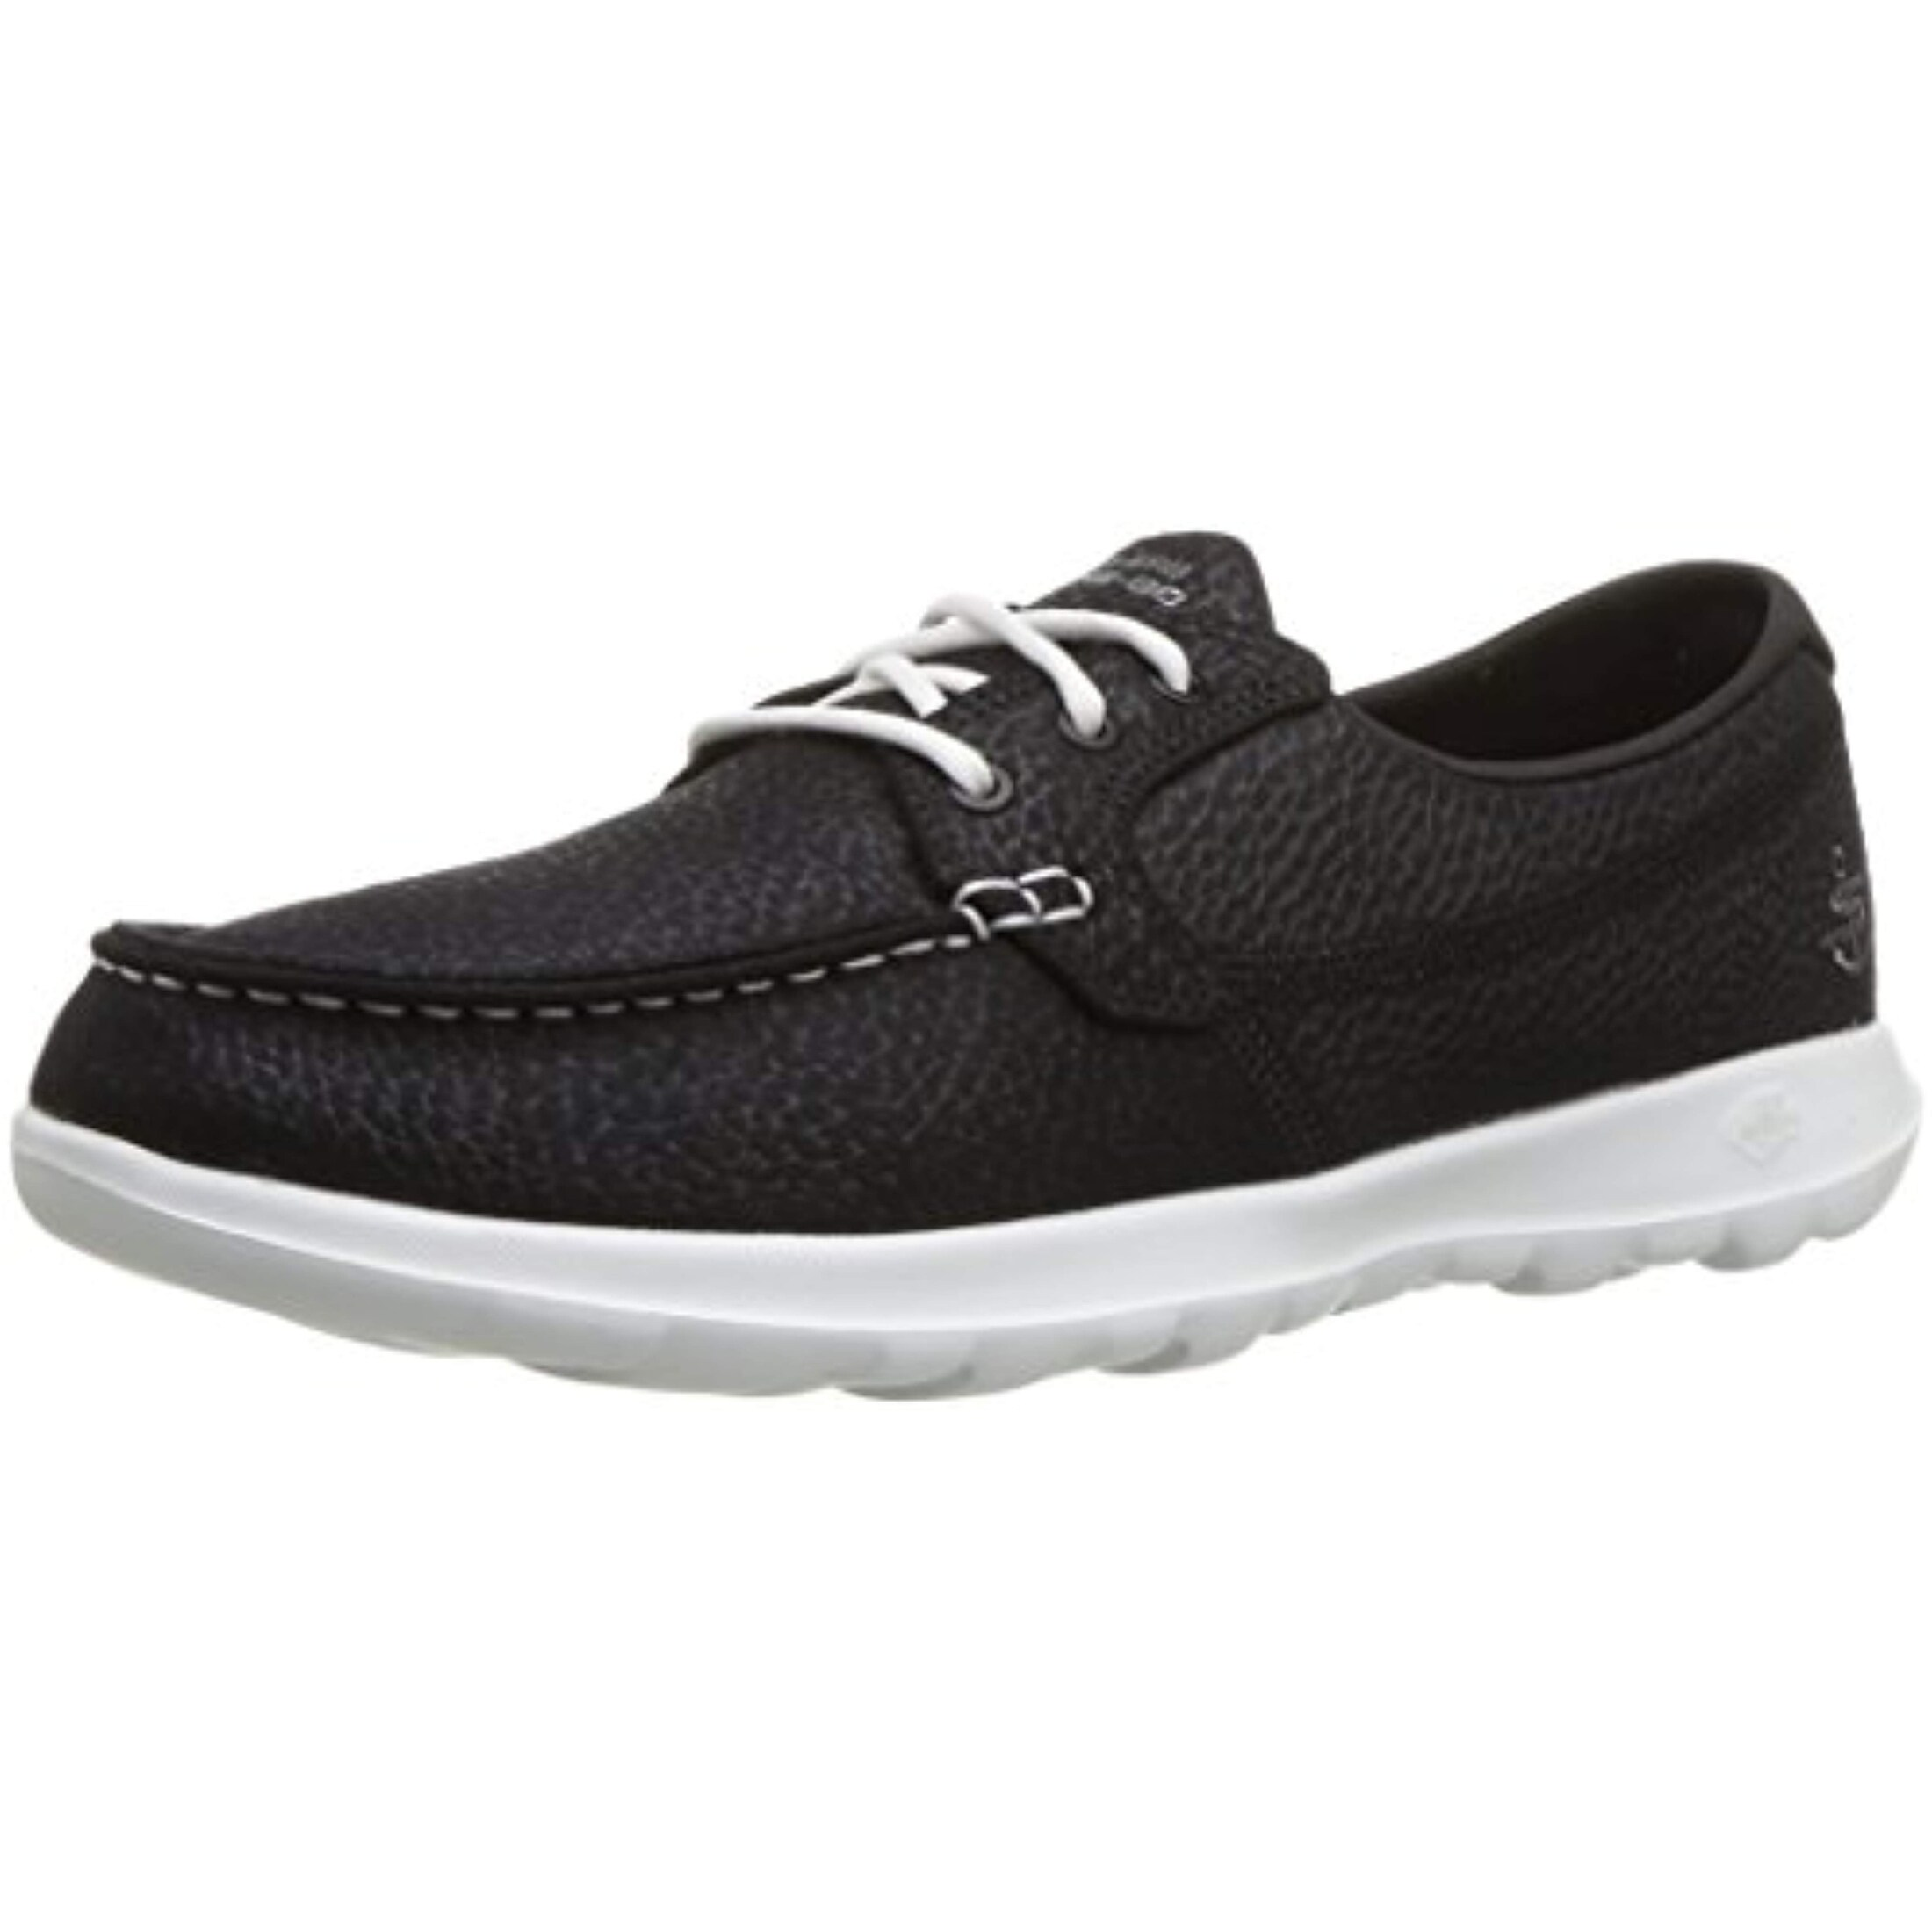 Skechers Performance Women's Go Walk Lite Eclipse Boat Shoe